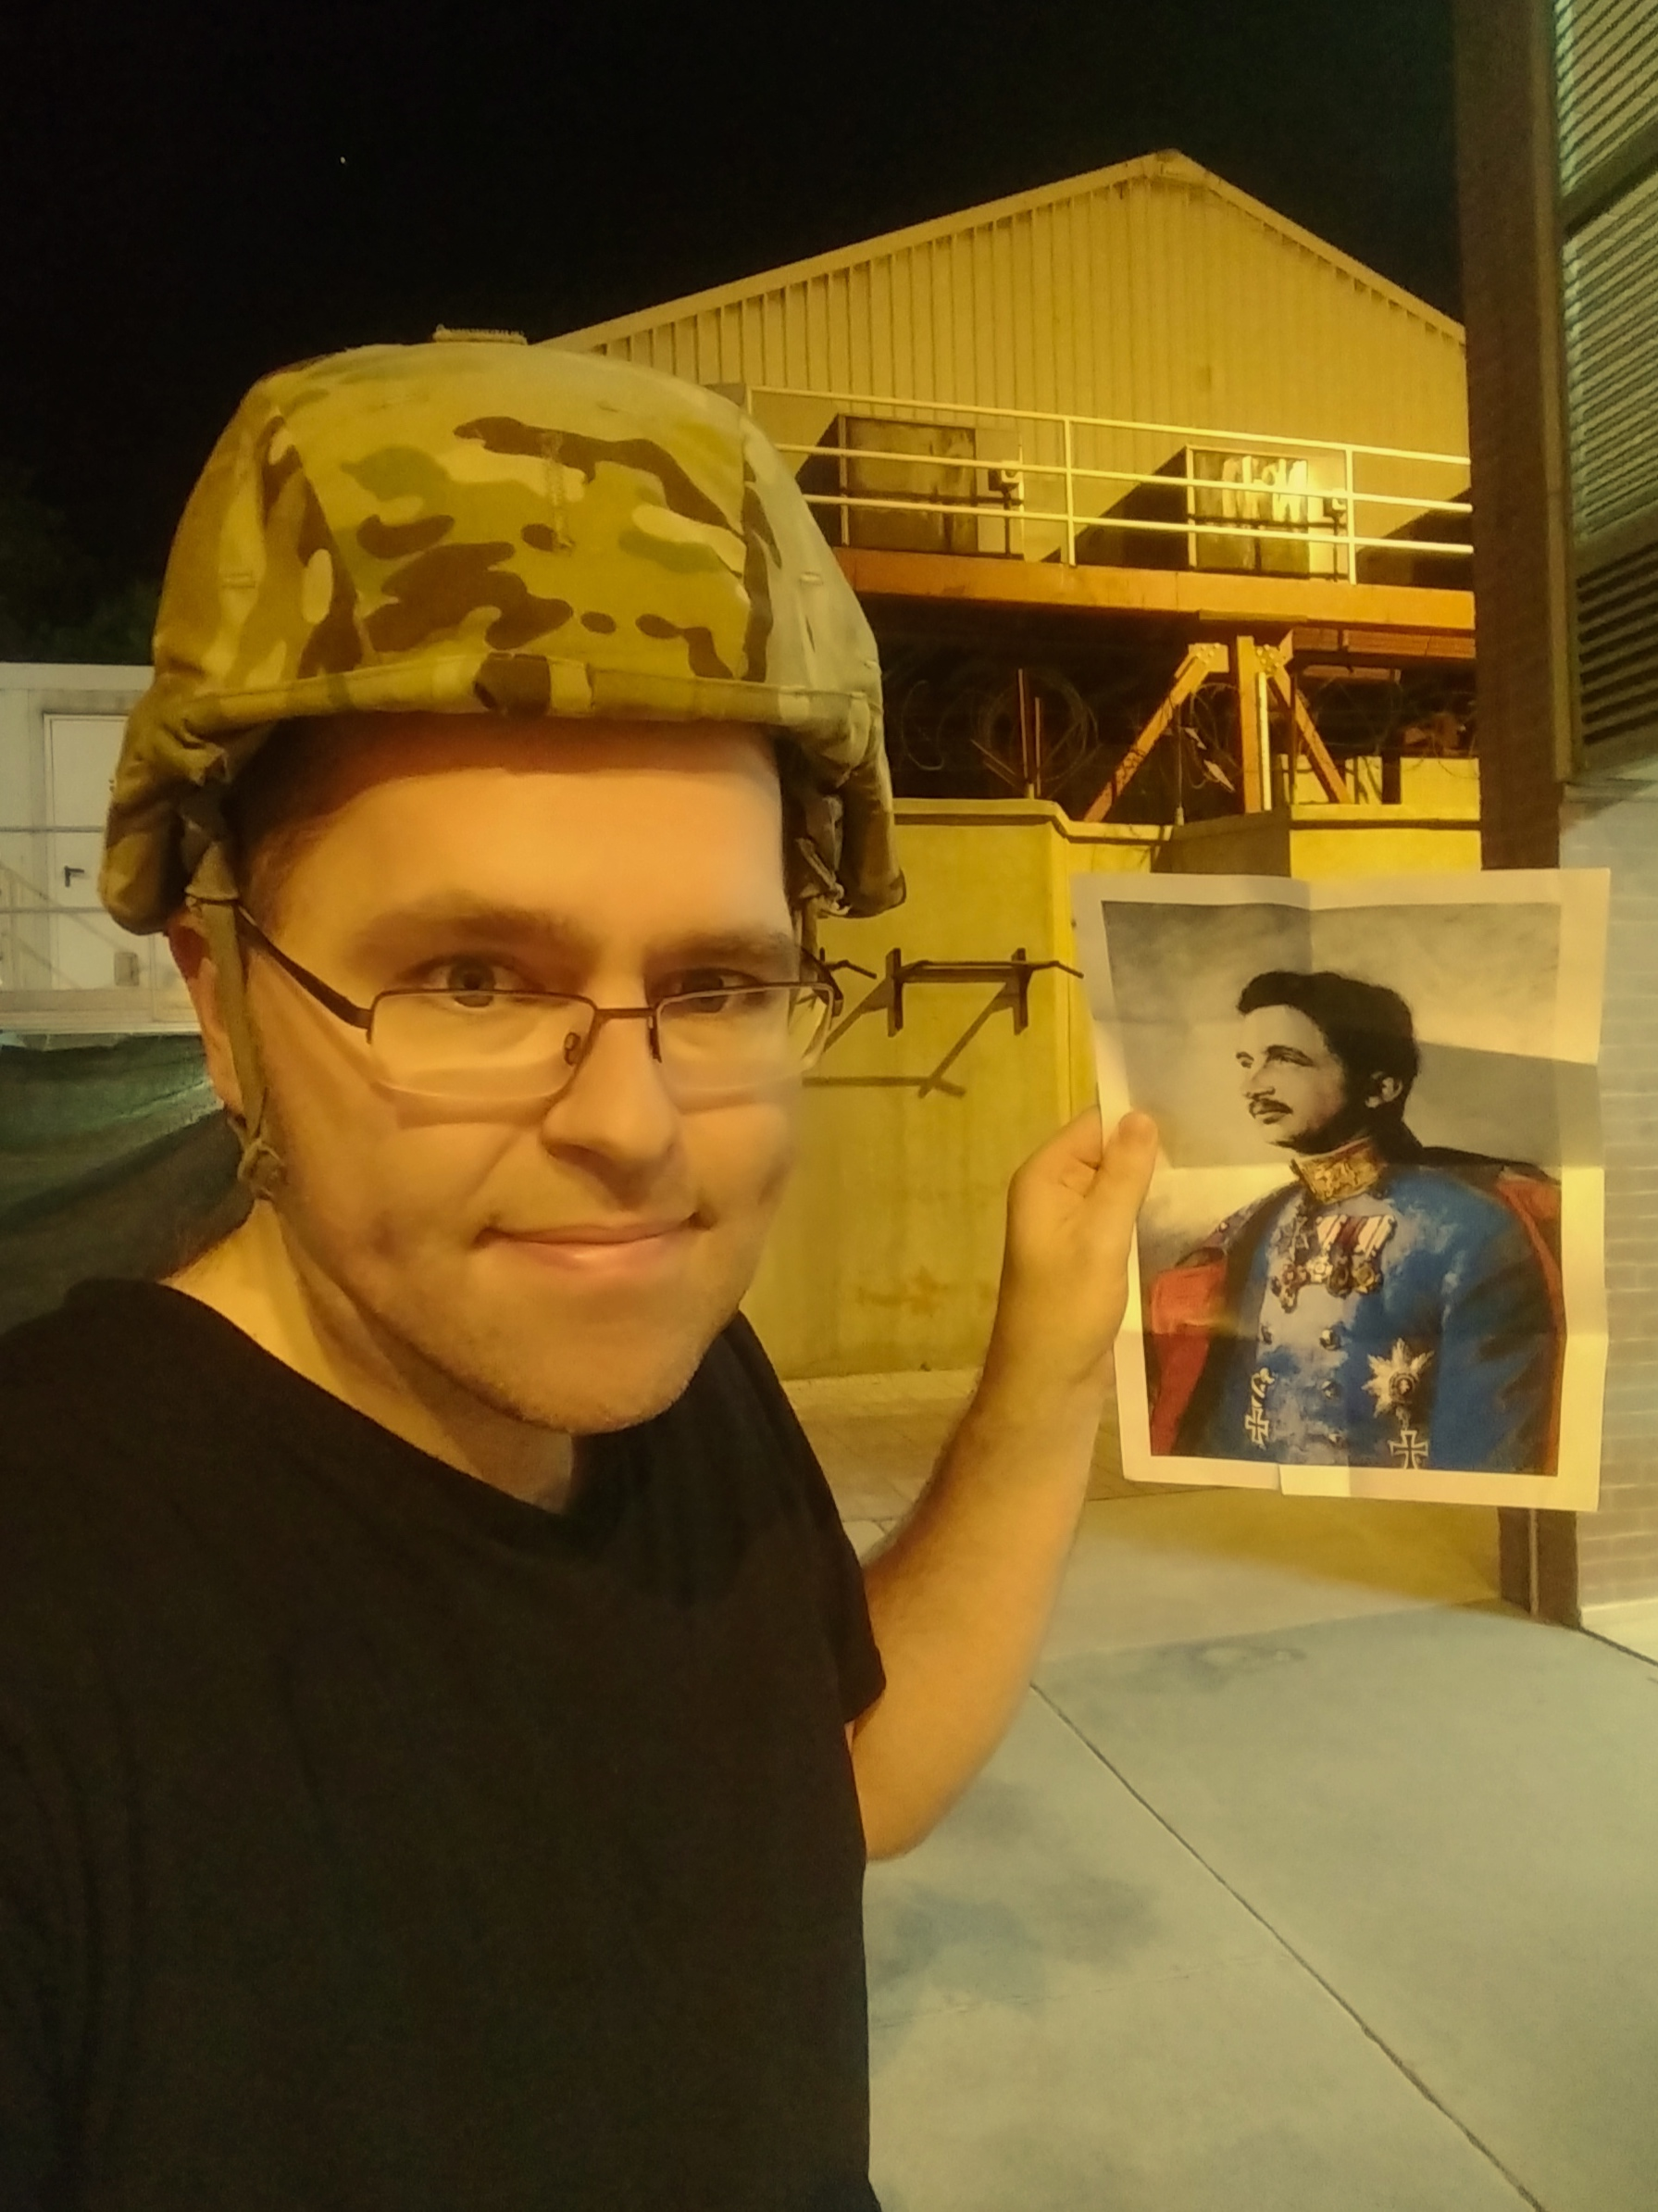 Patrick Abbott, Financial Secretary to O'Boyle Council 11302 and acting Roundtable Chairman, is shown in Kabul, Afghanistan, with his image of Blessed Karl during a recent deployment.